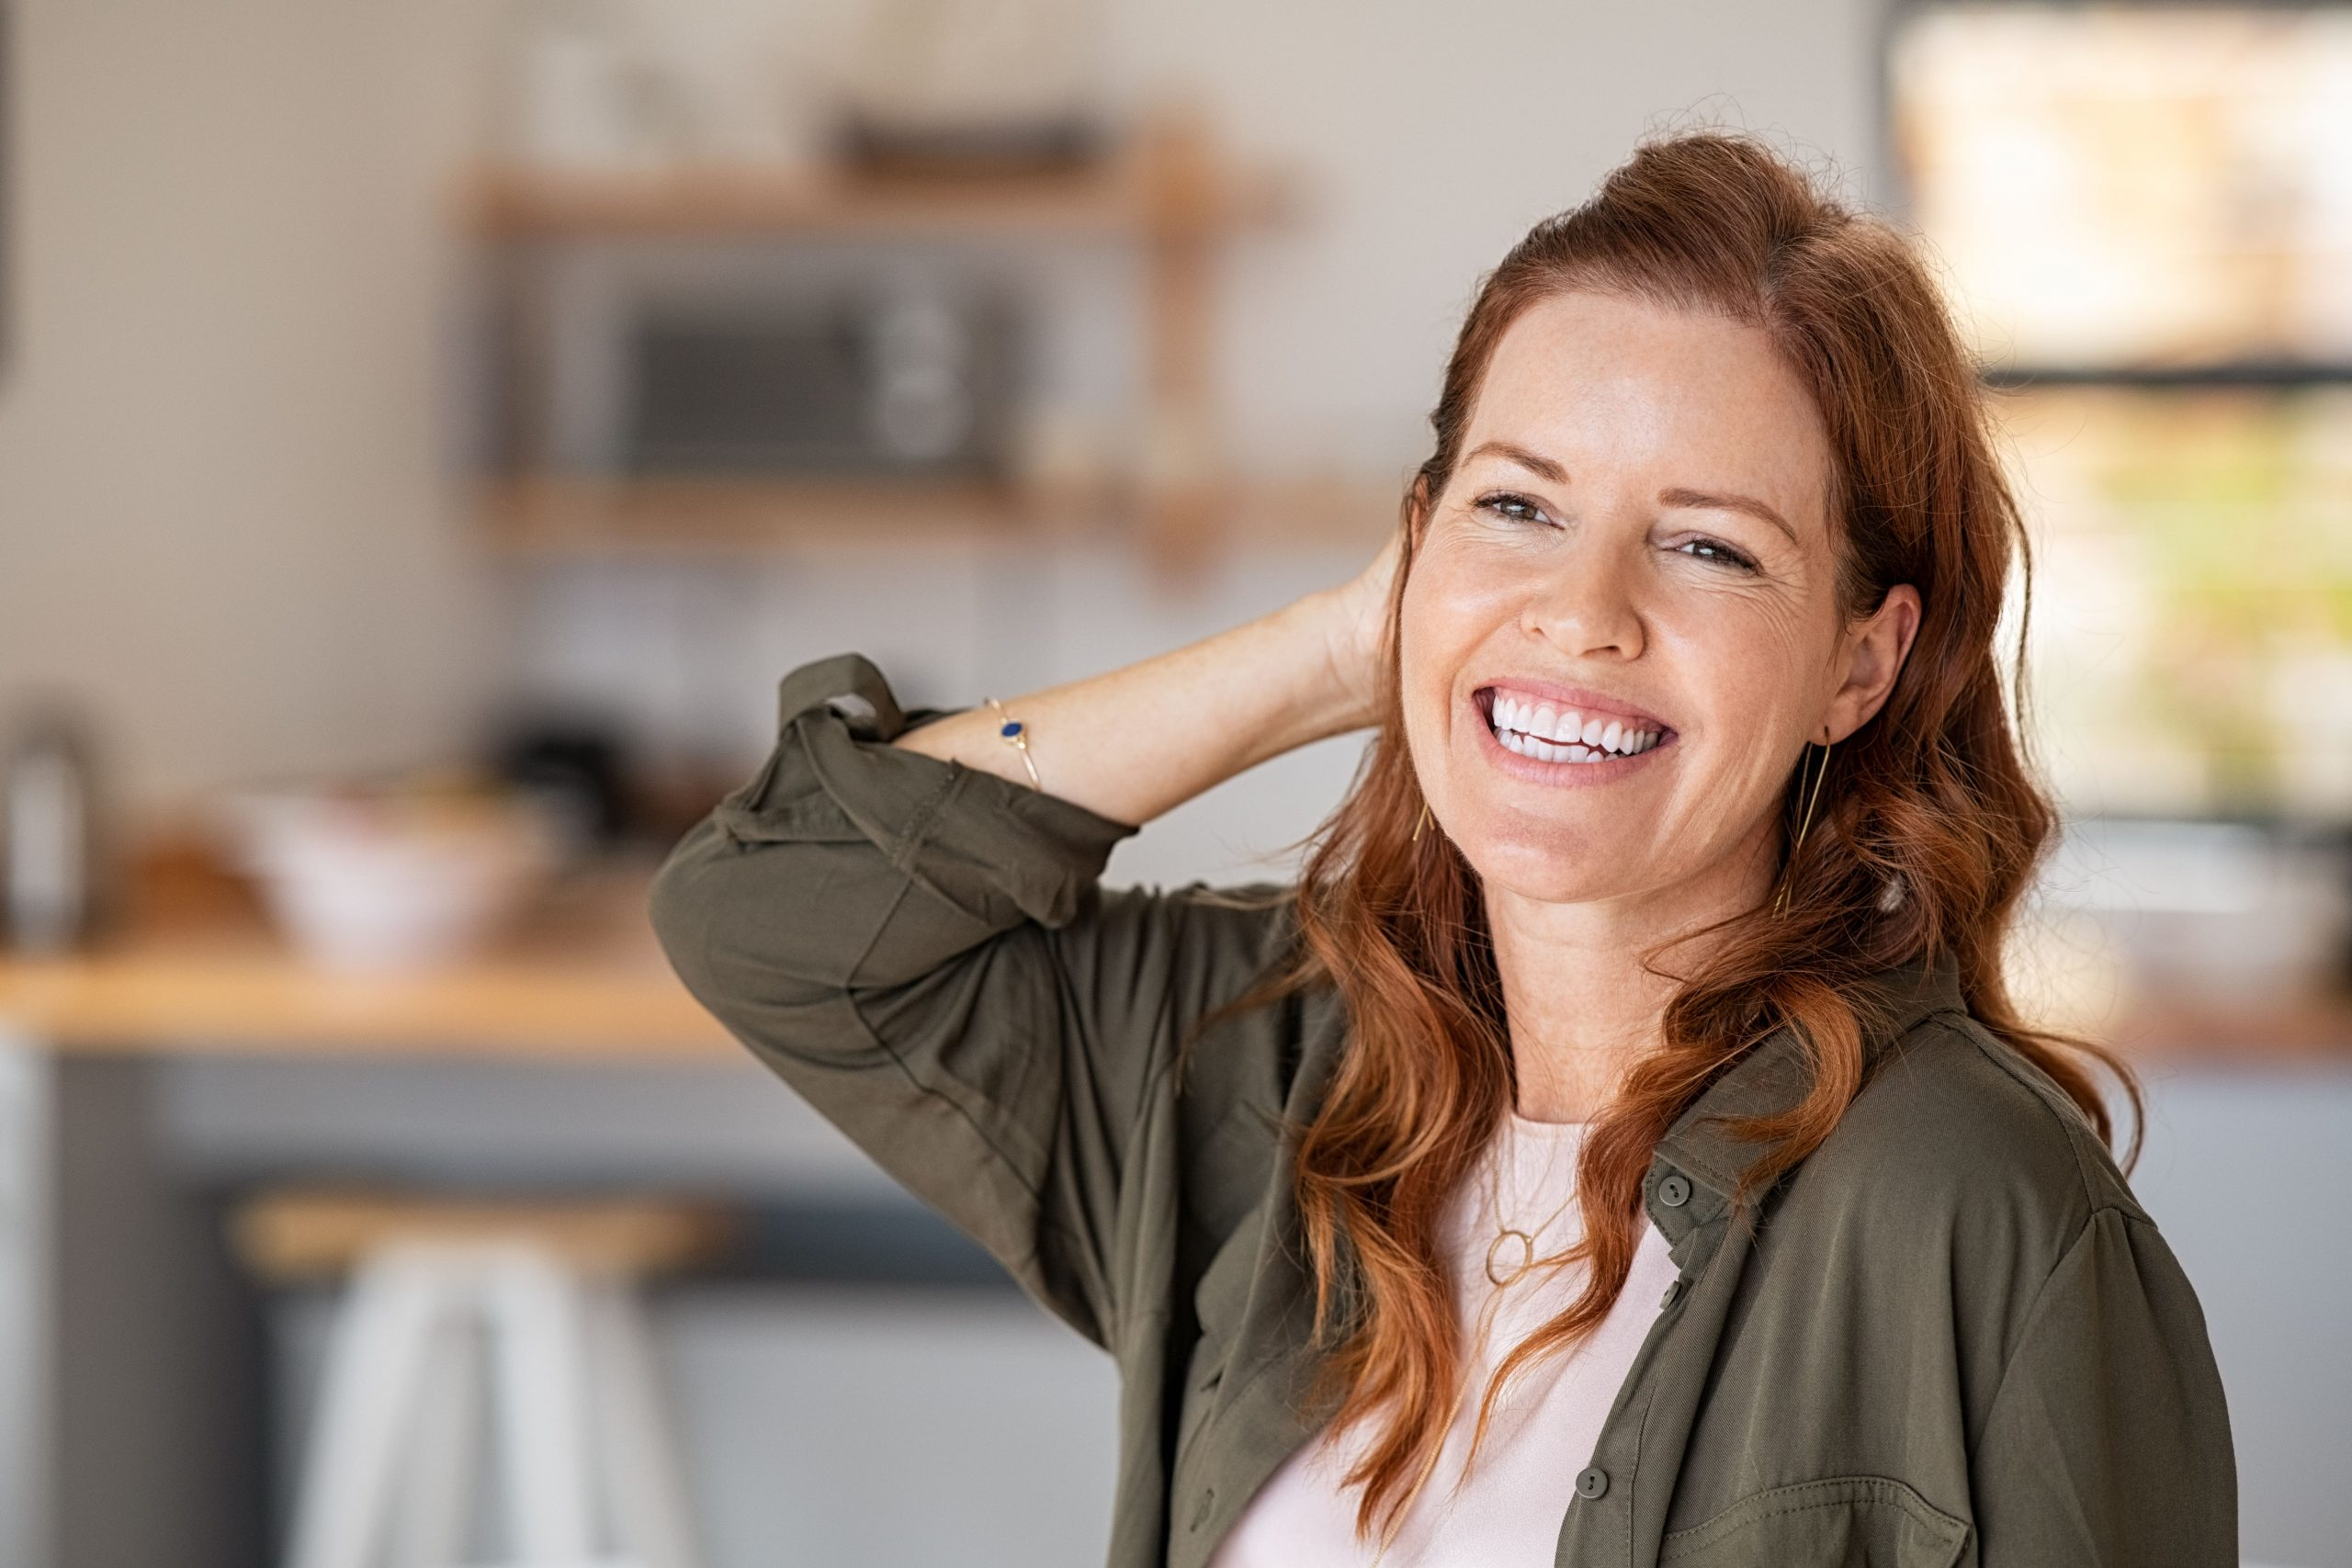 happy woman experiencing early menopause